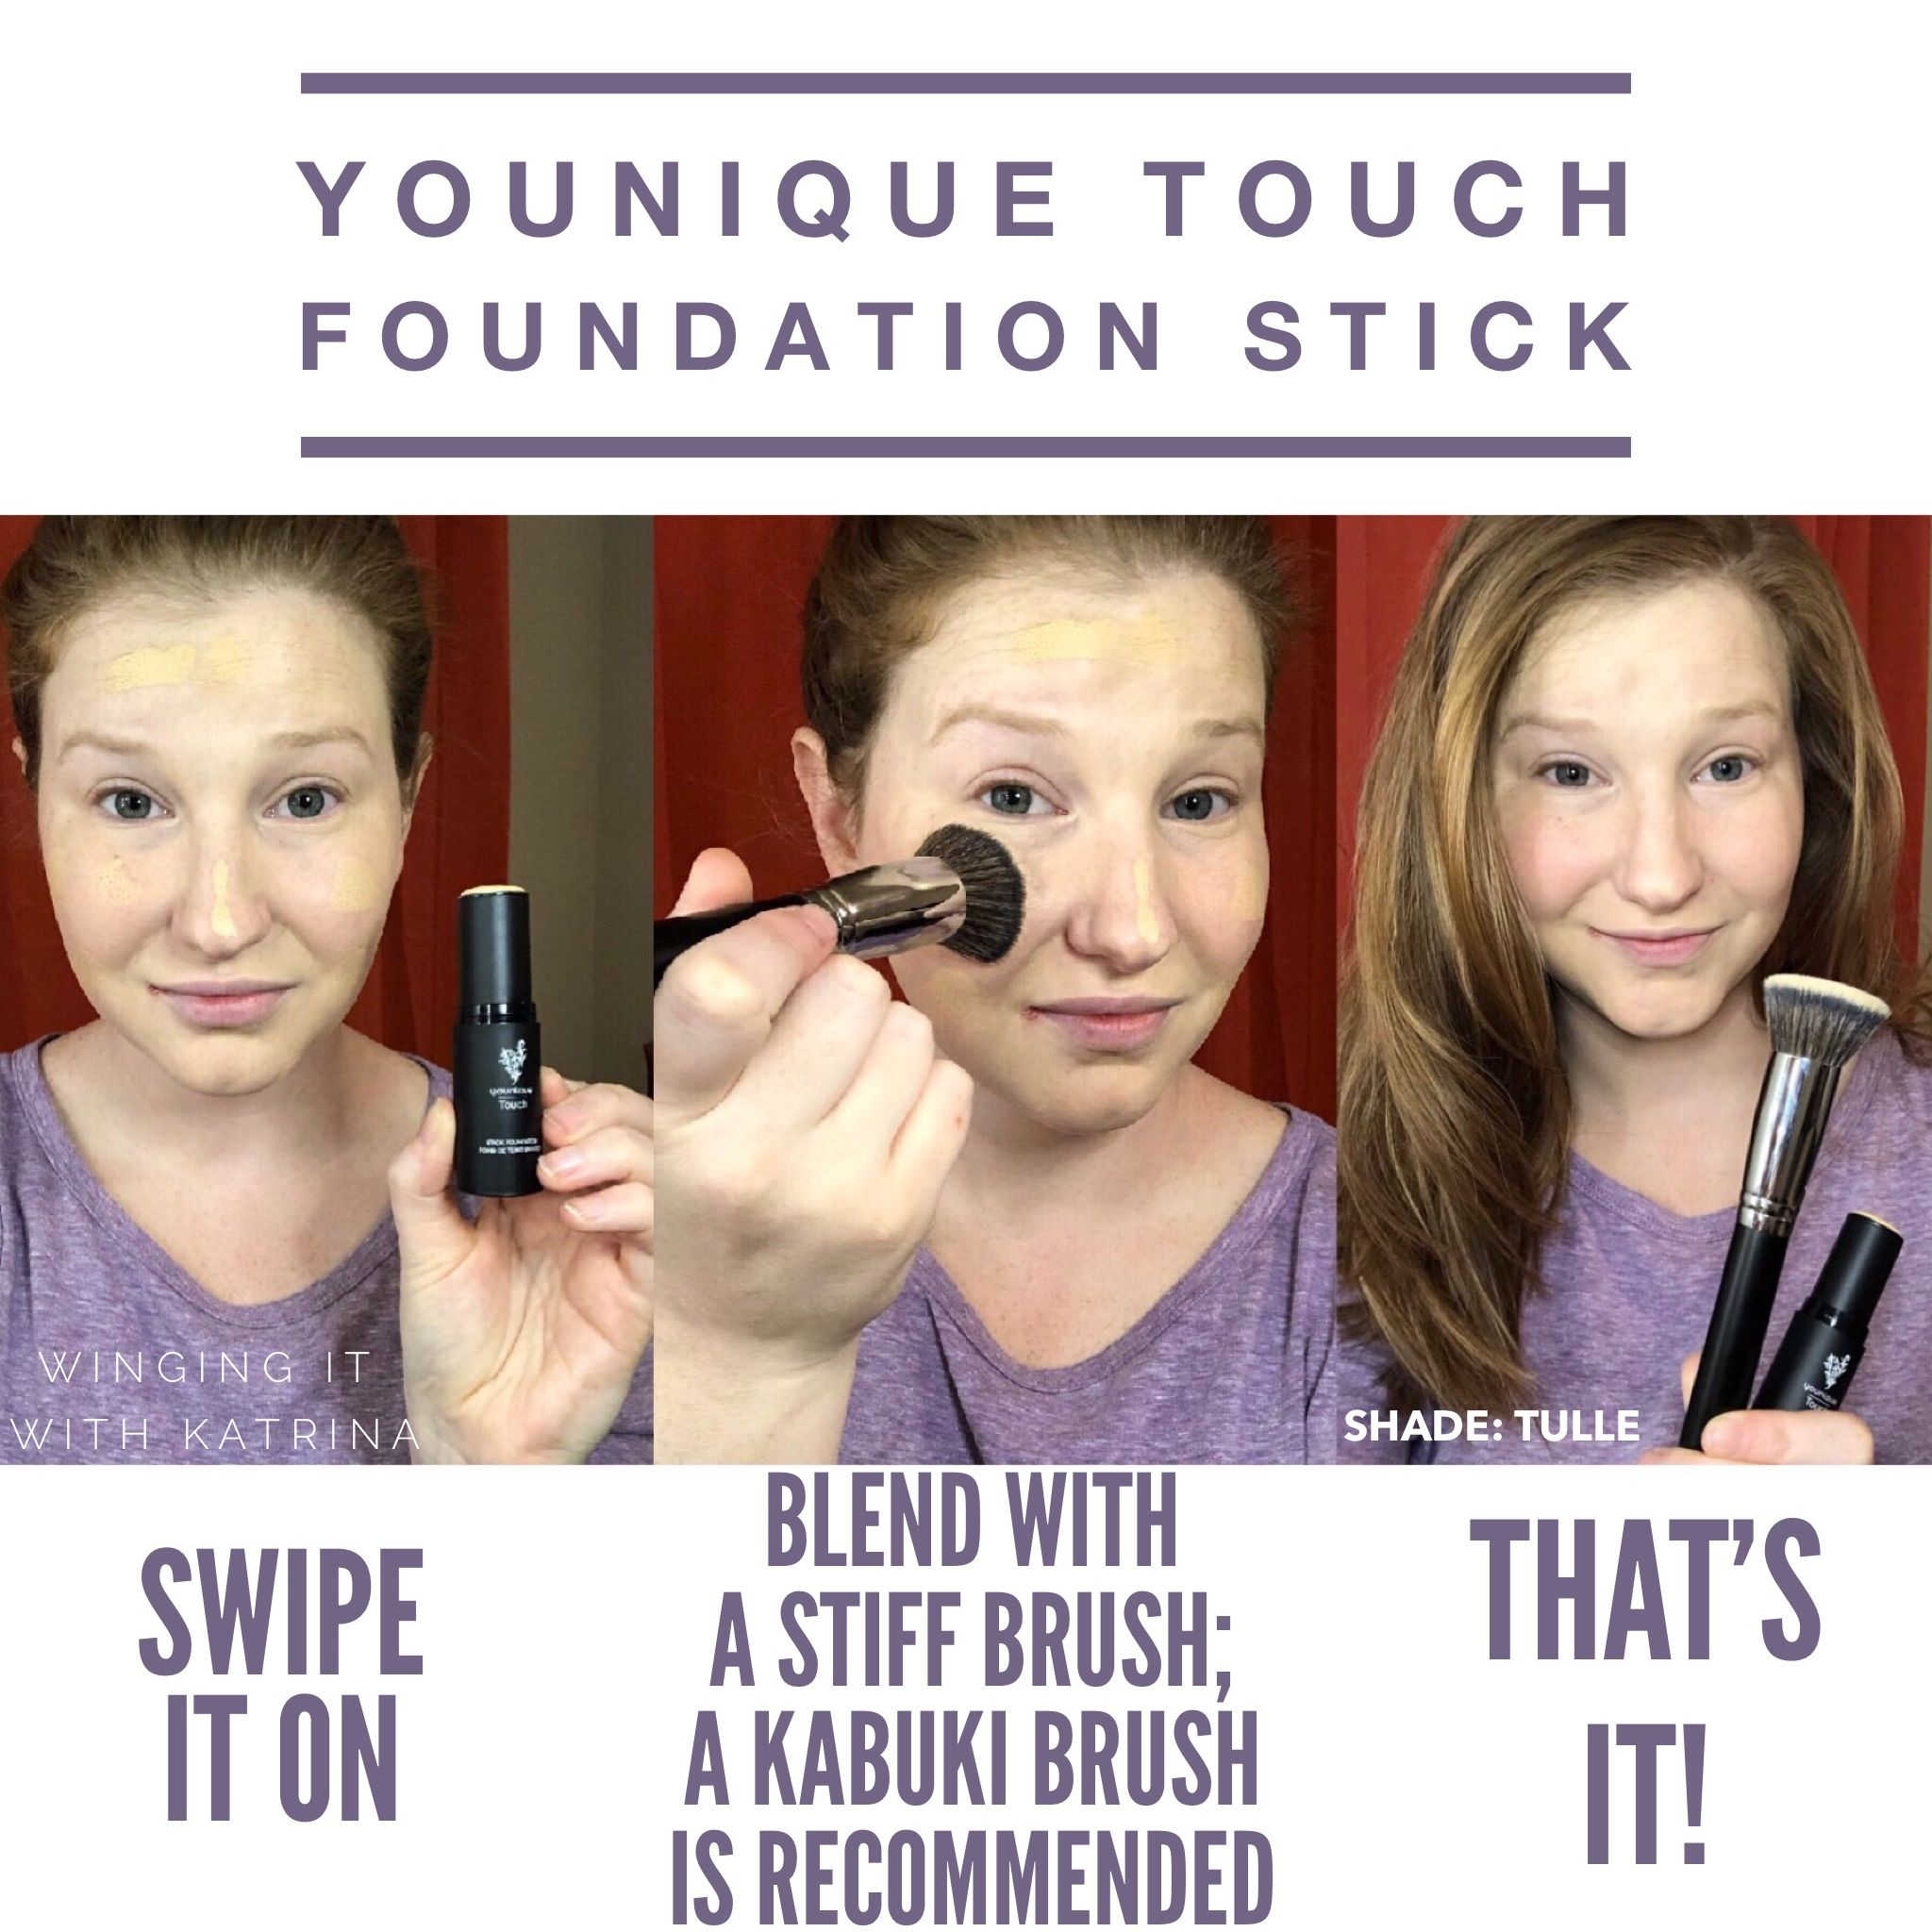 Younique Touch Foundation Stick In The Shade Tulle